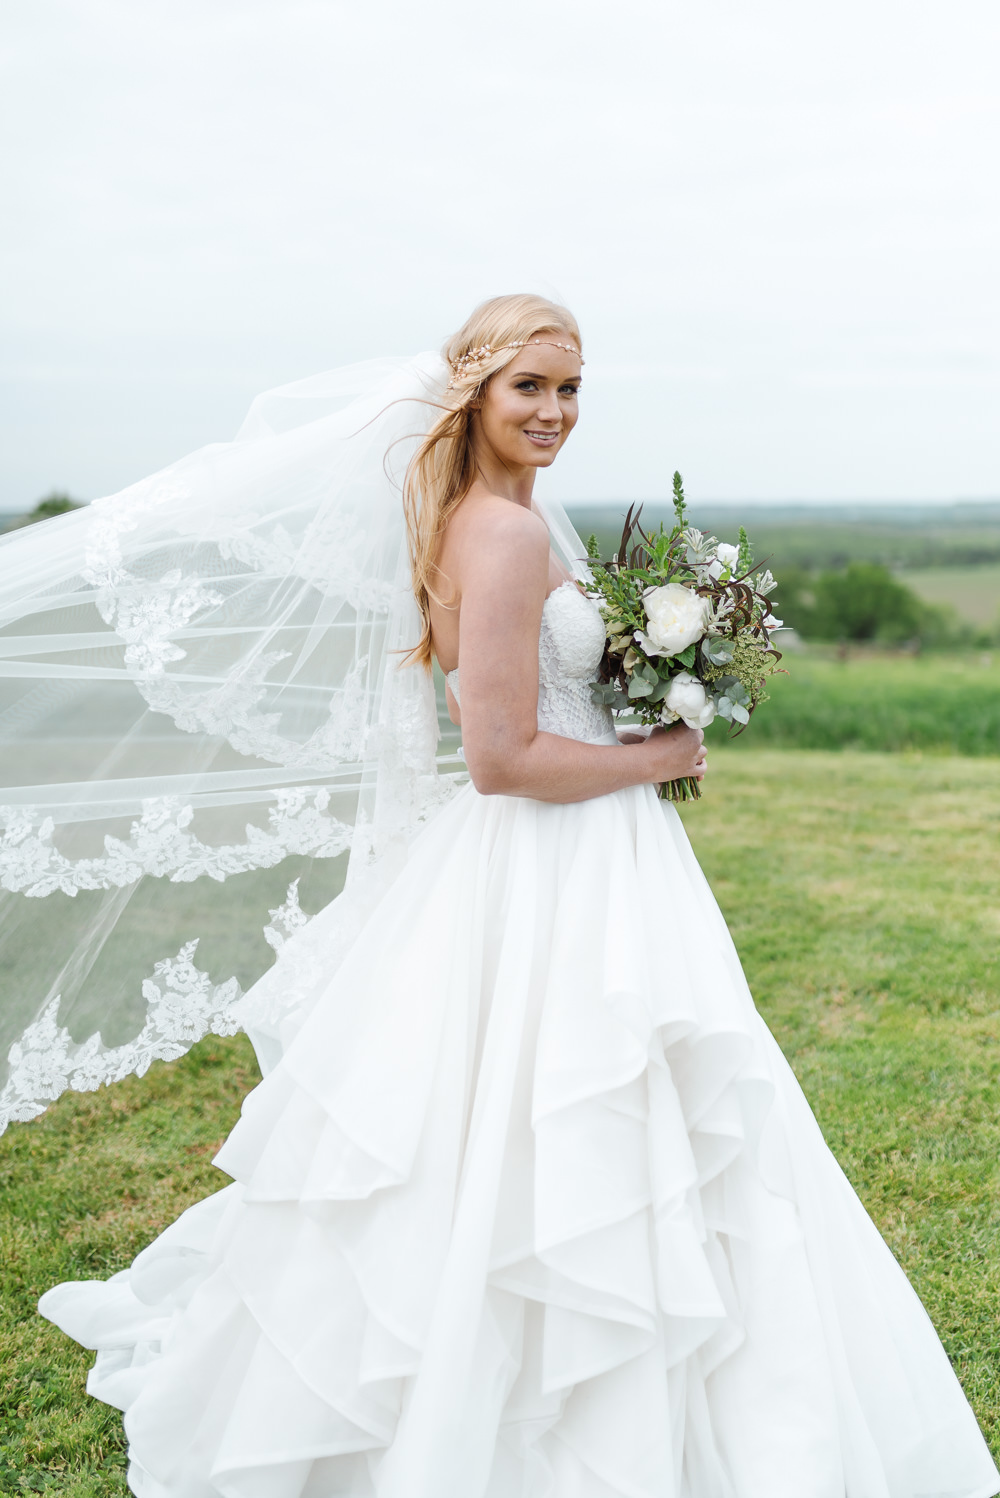 Dress Gown Bride Bridal Skirt Strapless Veil Grey Violet Wedding Ideas Chloe Ely Photography